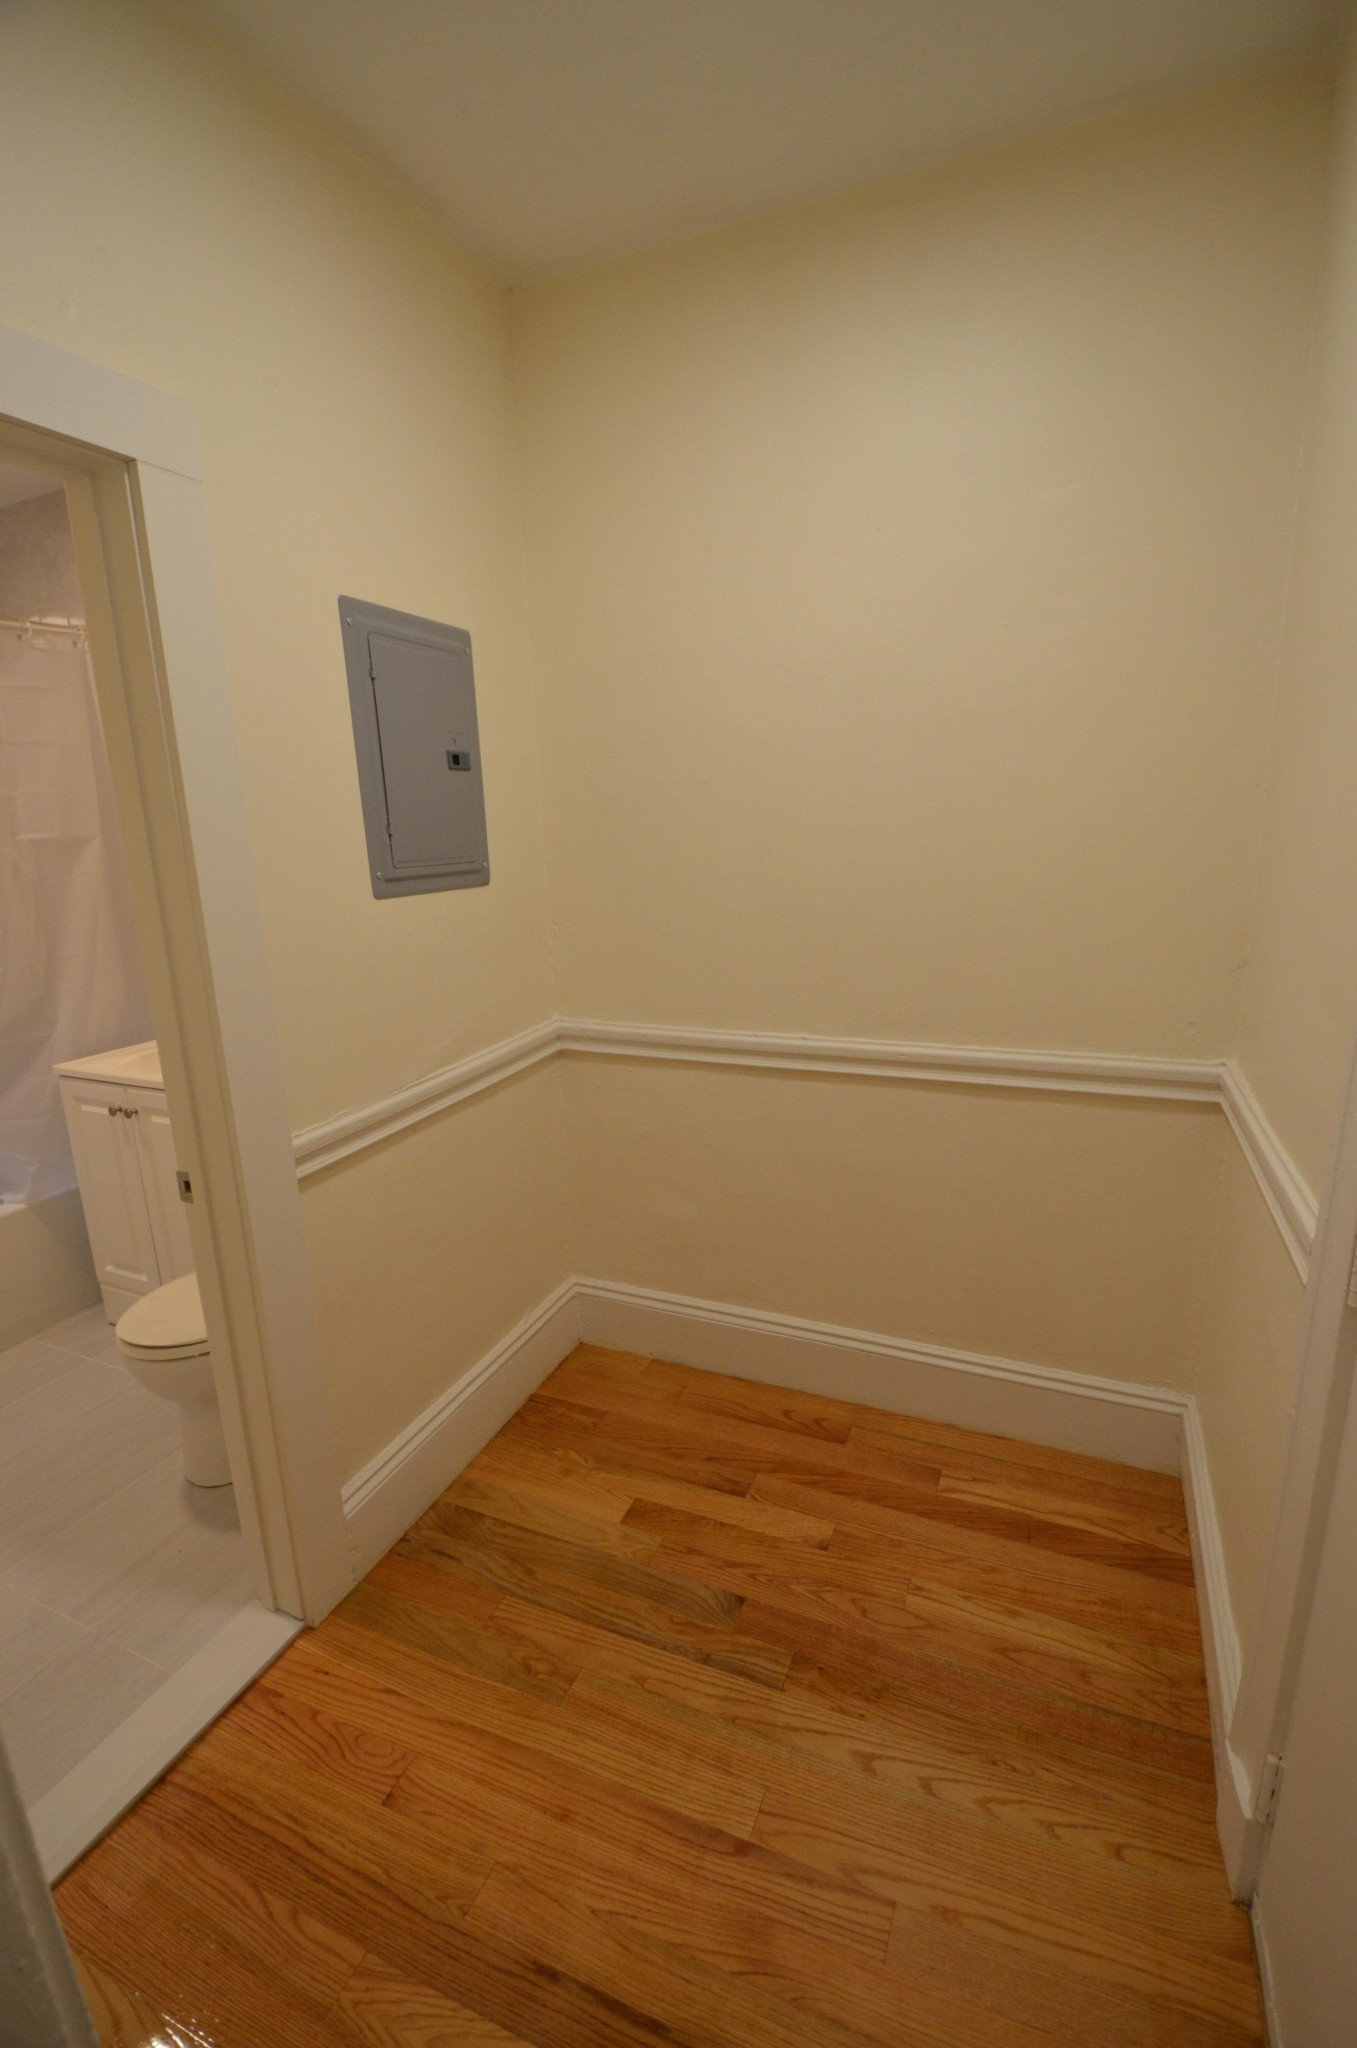 AVAIL 9/1 - Charming, Comfortable 1 BR on WESTLAND AVE